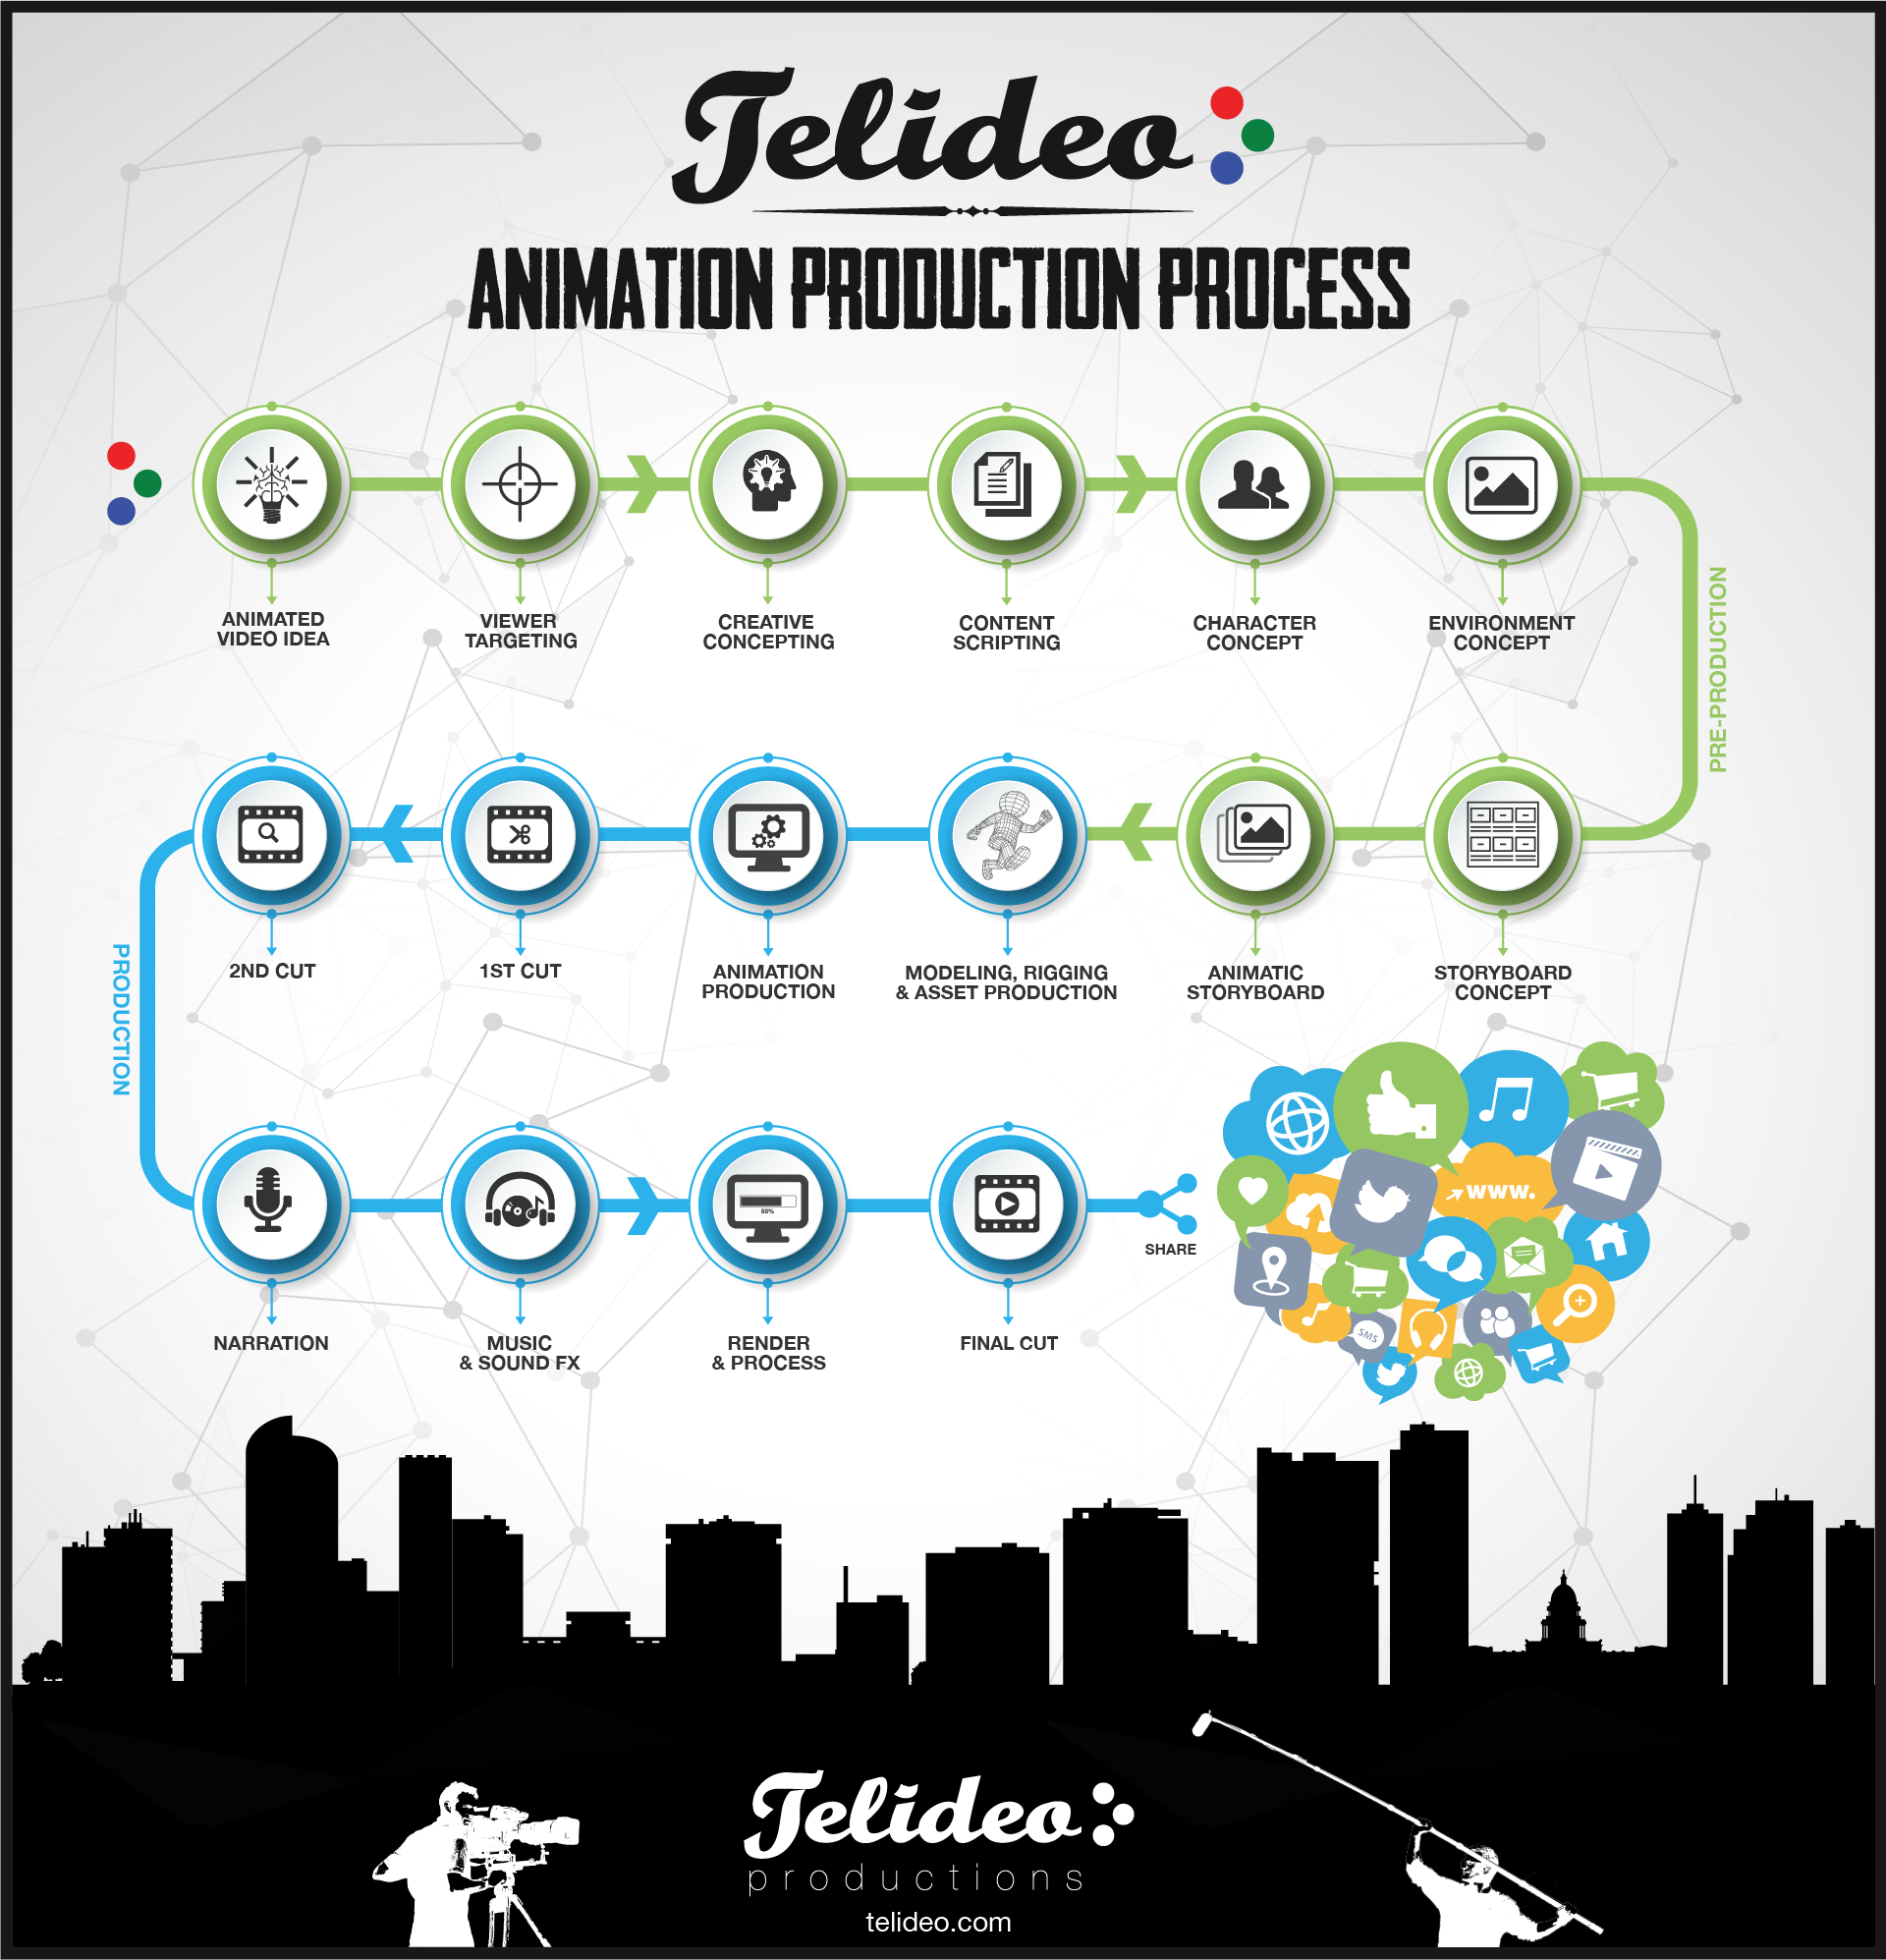 This is a detailed infographic map of the animation